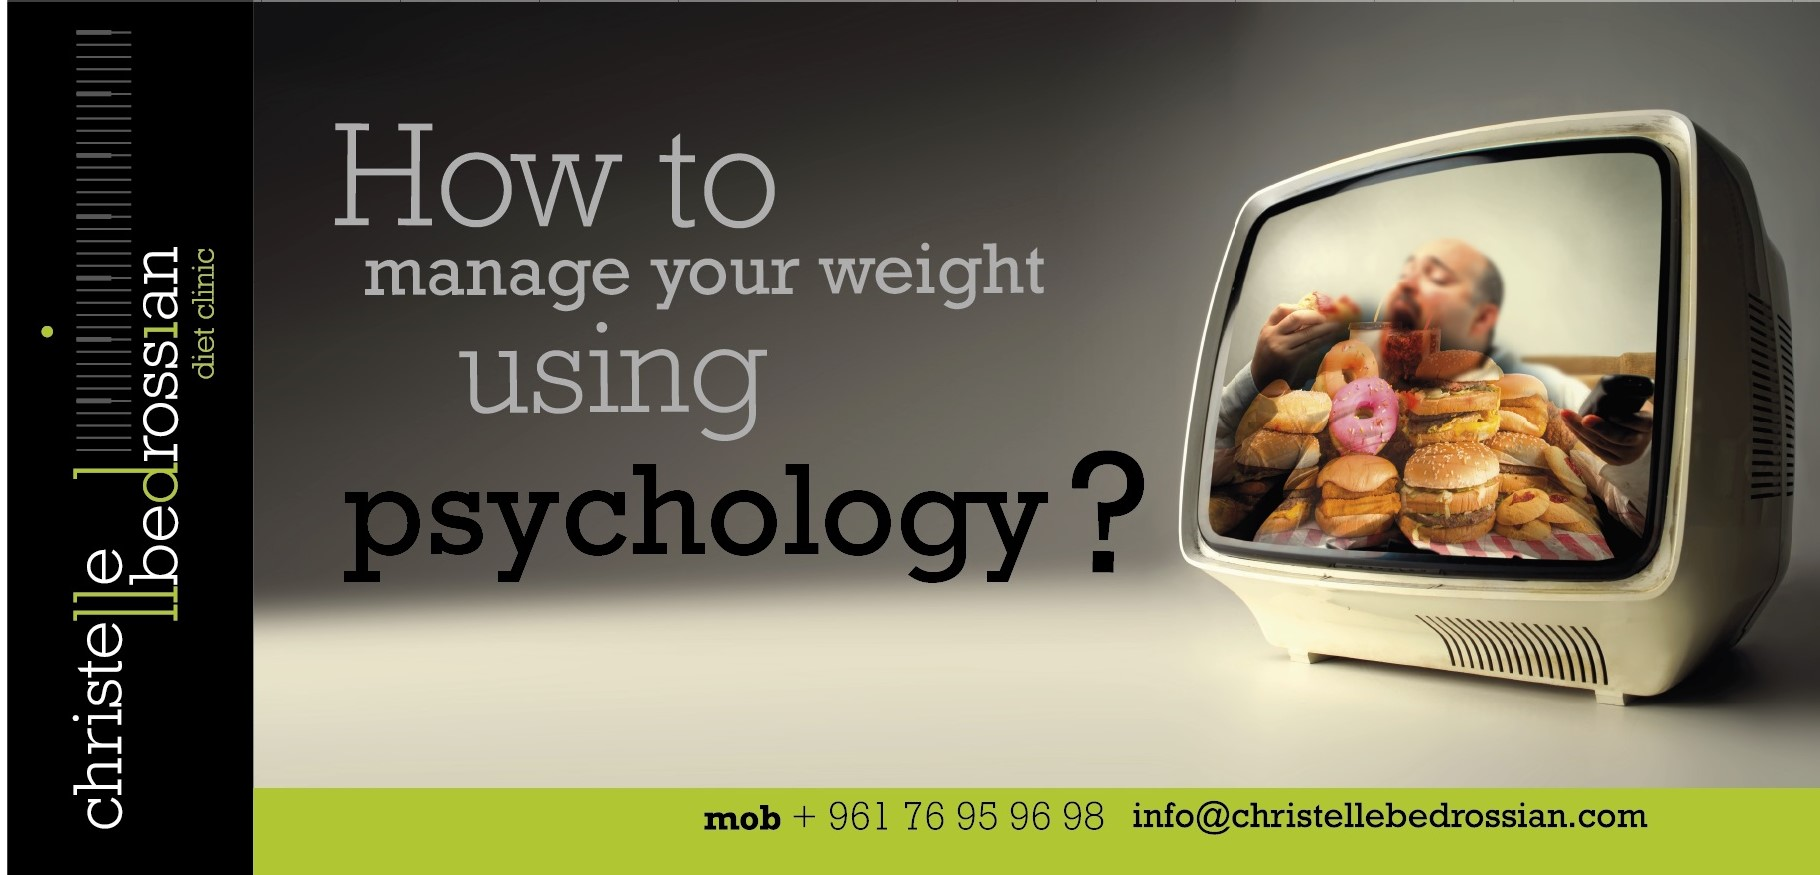 best dietitian lebanon, lebanon, diet, diet clinic, lose weight lebanon, health, psychology